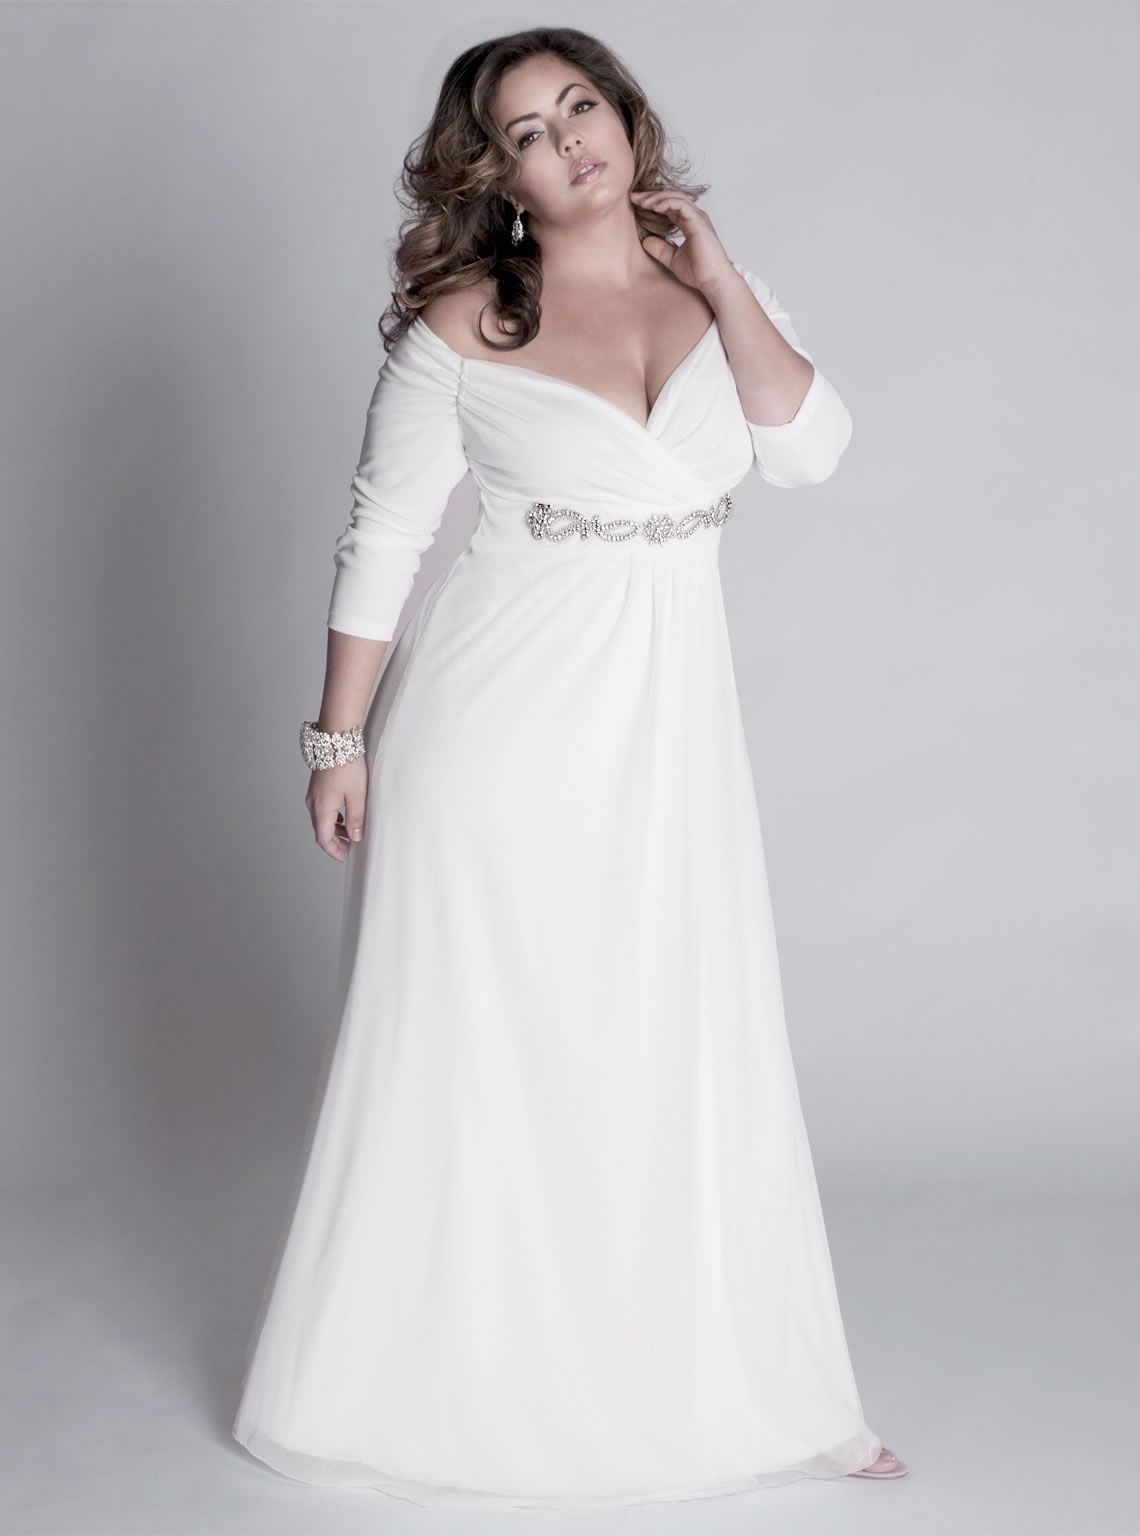 plus size casual wedding dress casual white wedding dress Plus size casual wedding dress Lace Ball Gown Wedding Dresses For Plus Size Plus Size